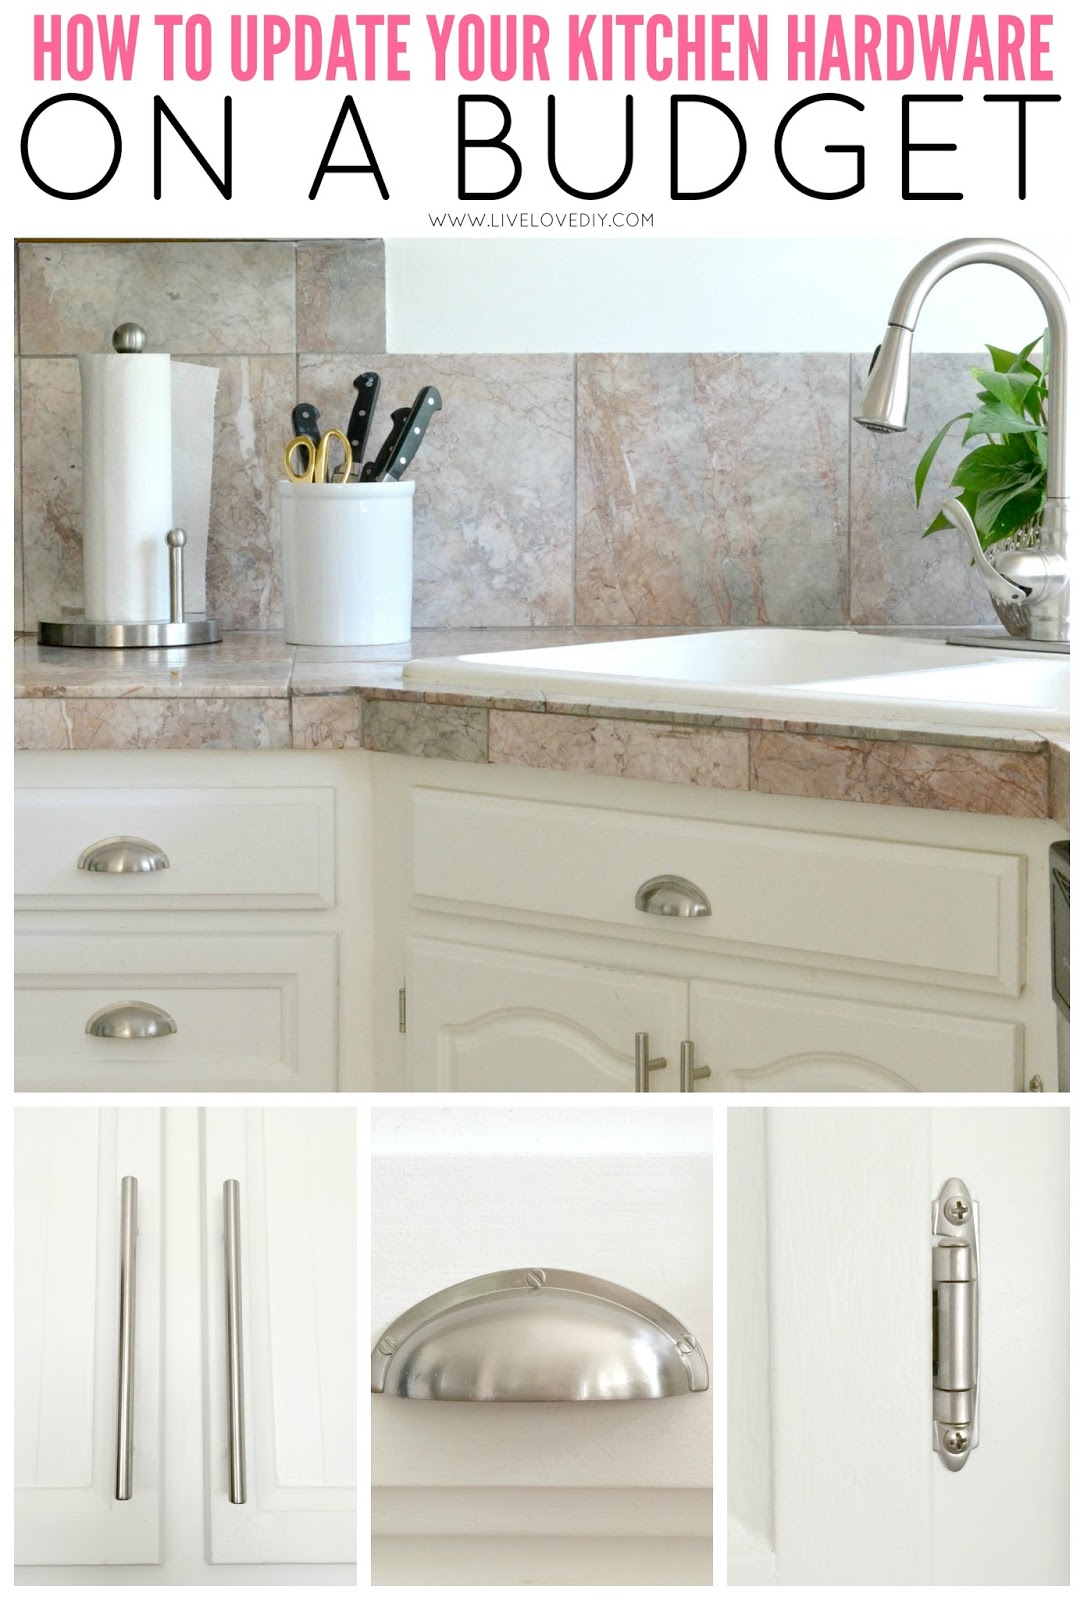 10 easy steps to paint kitchen cabinets affordable kitchen cabinets Ever